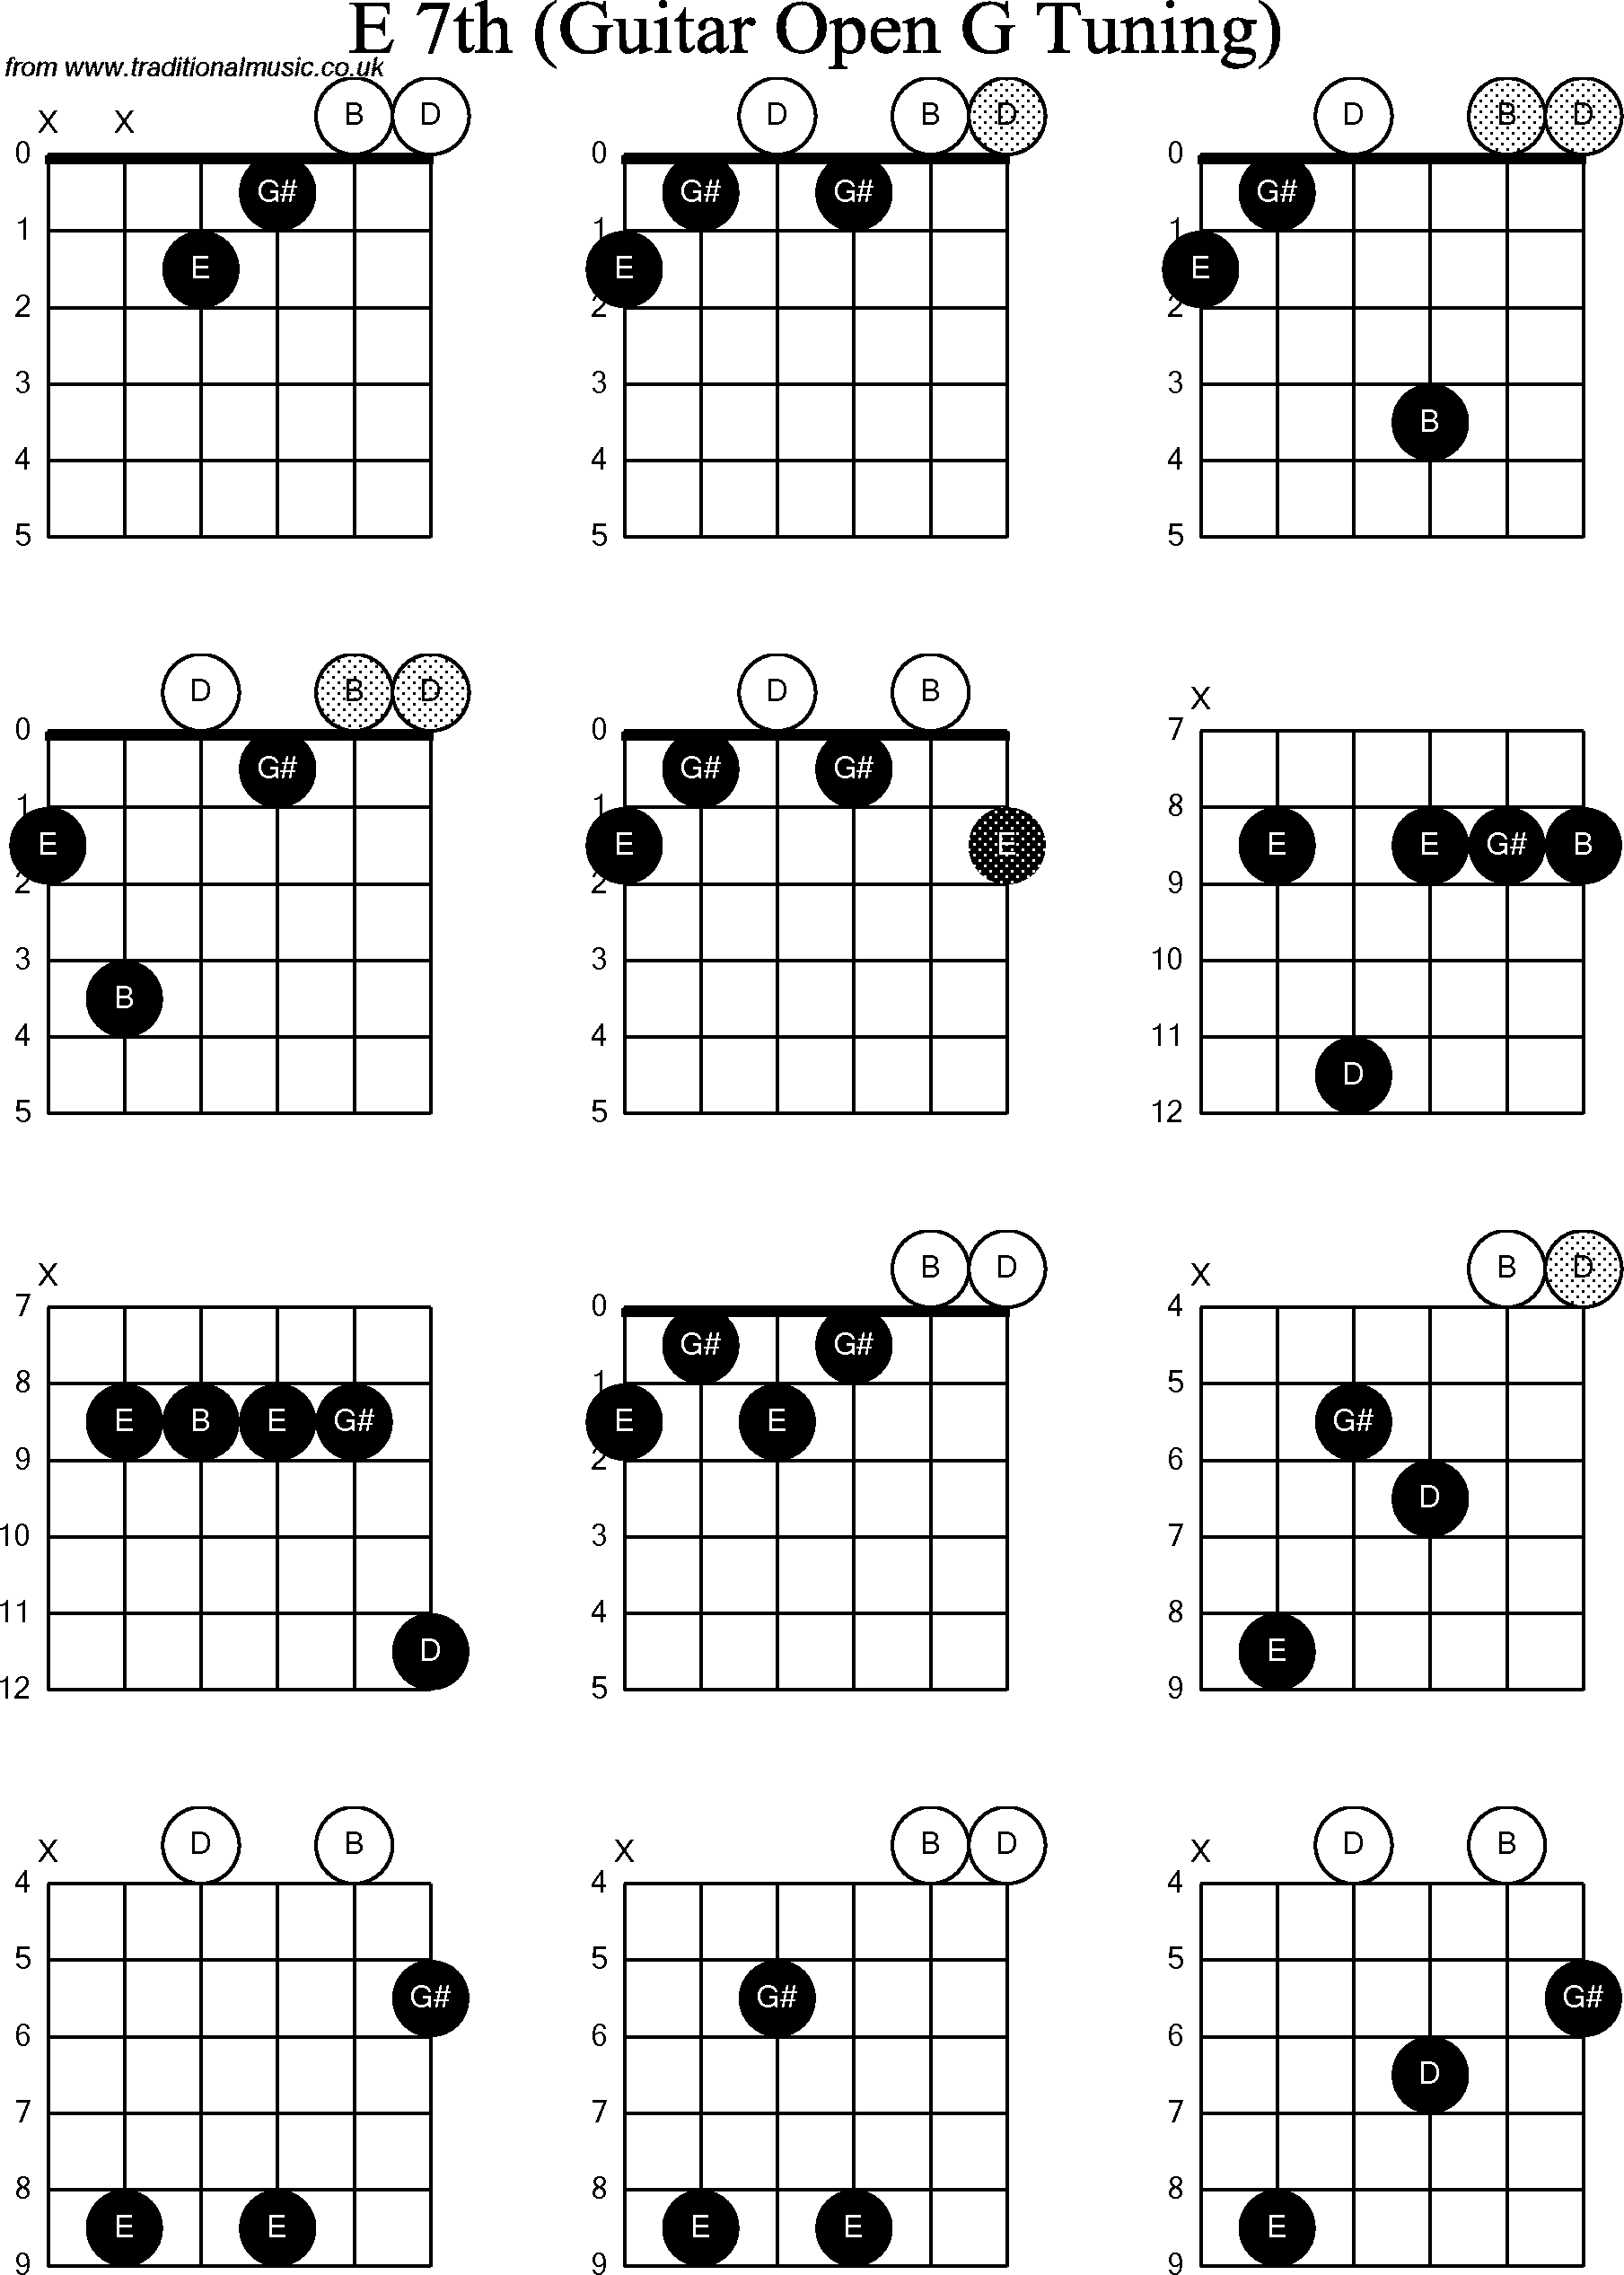 chord diagrams for  dobro e7th